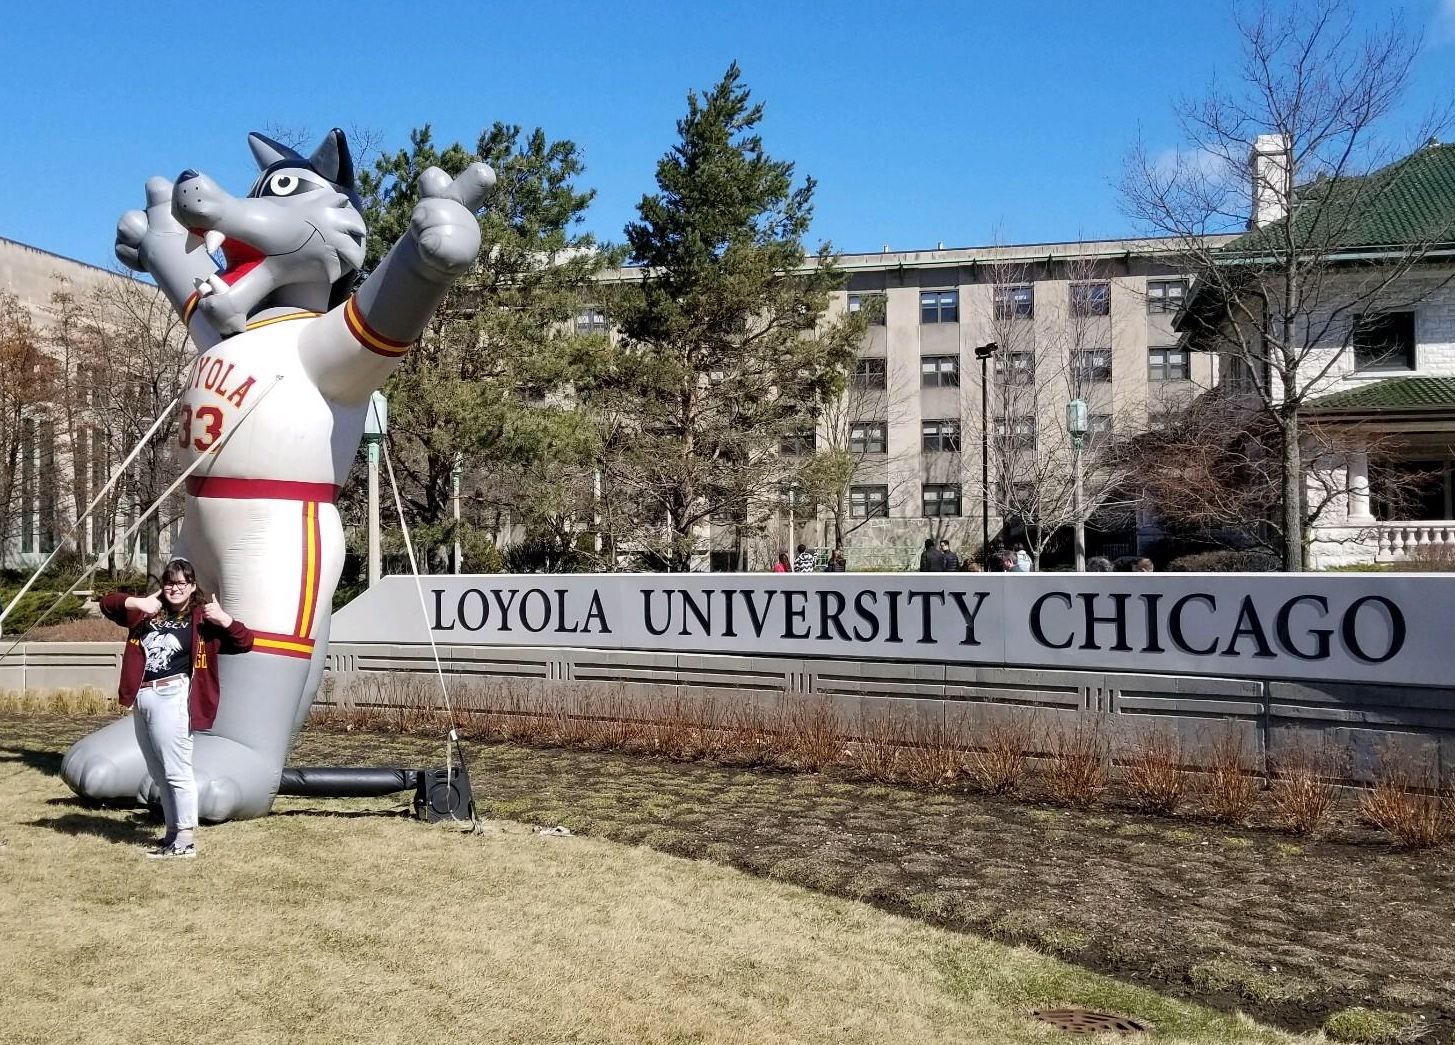 Missy Tepe standing outside Loyola University Chicago where she will be attending college next year.